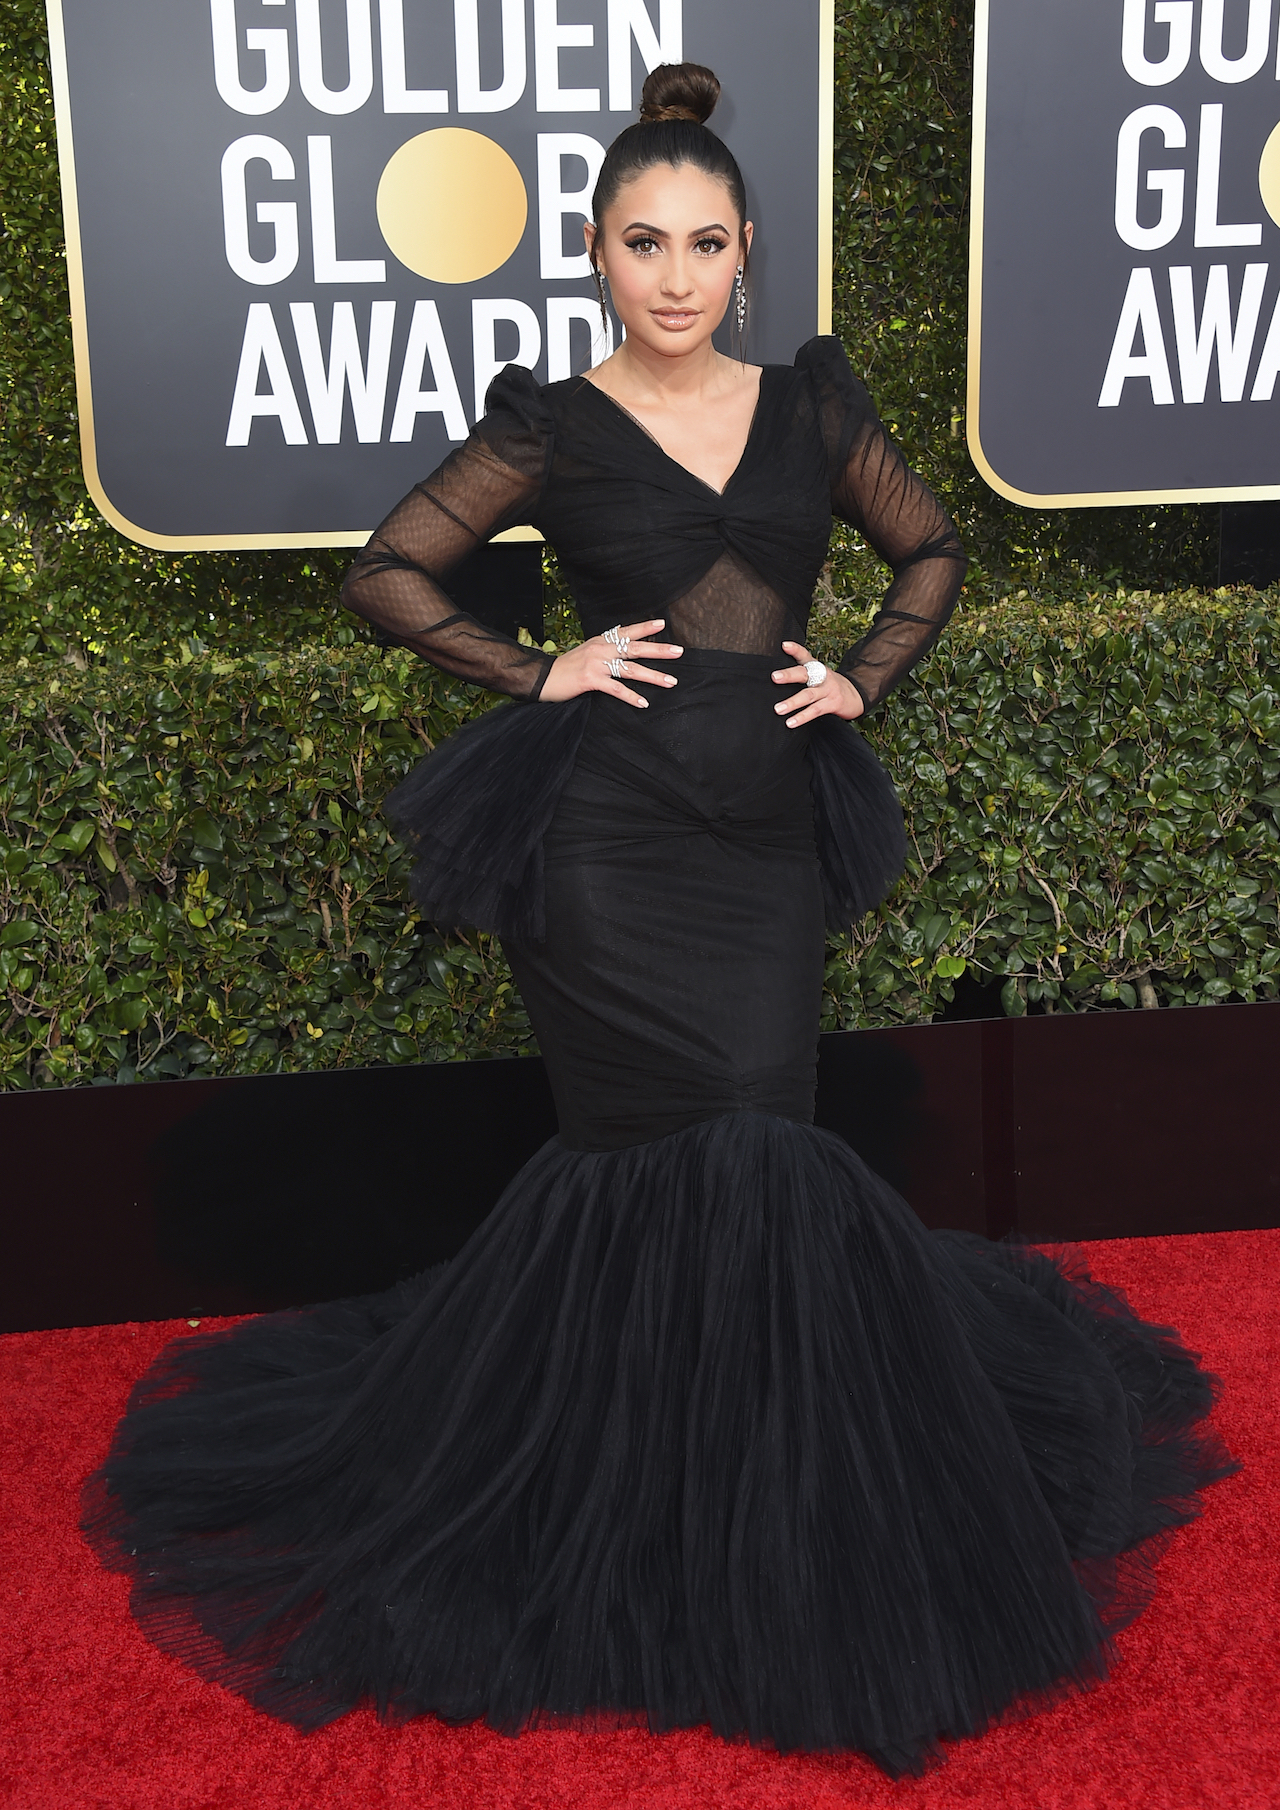 "<div class=""meta image-caption""><div class=""origin-logo origin-image ap""><span>AP</span></div><span class=""caption-text"">Francia Raisa arrives at the 76th annual Golden Globe Awards at the Beverly Hilton Hotel on Sunday, Jan. 6, 2019, in Beverly Hills, Calif. (Jordan Strauss/Invision/AP)</span></div>"